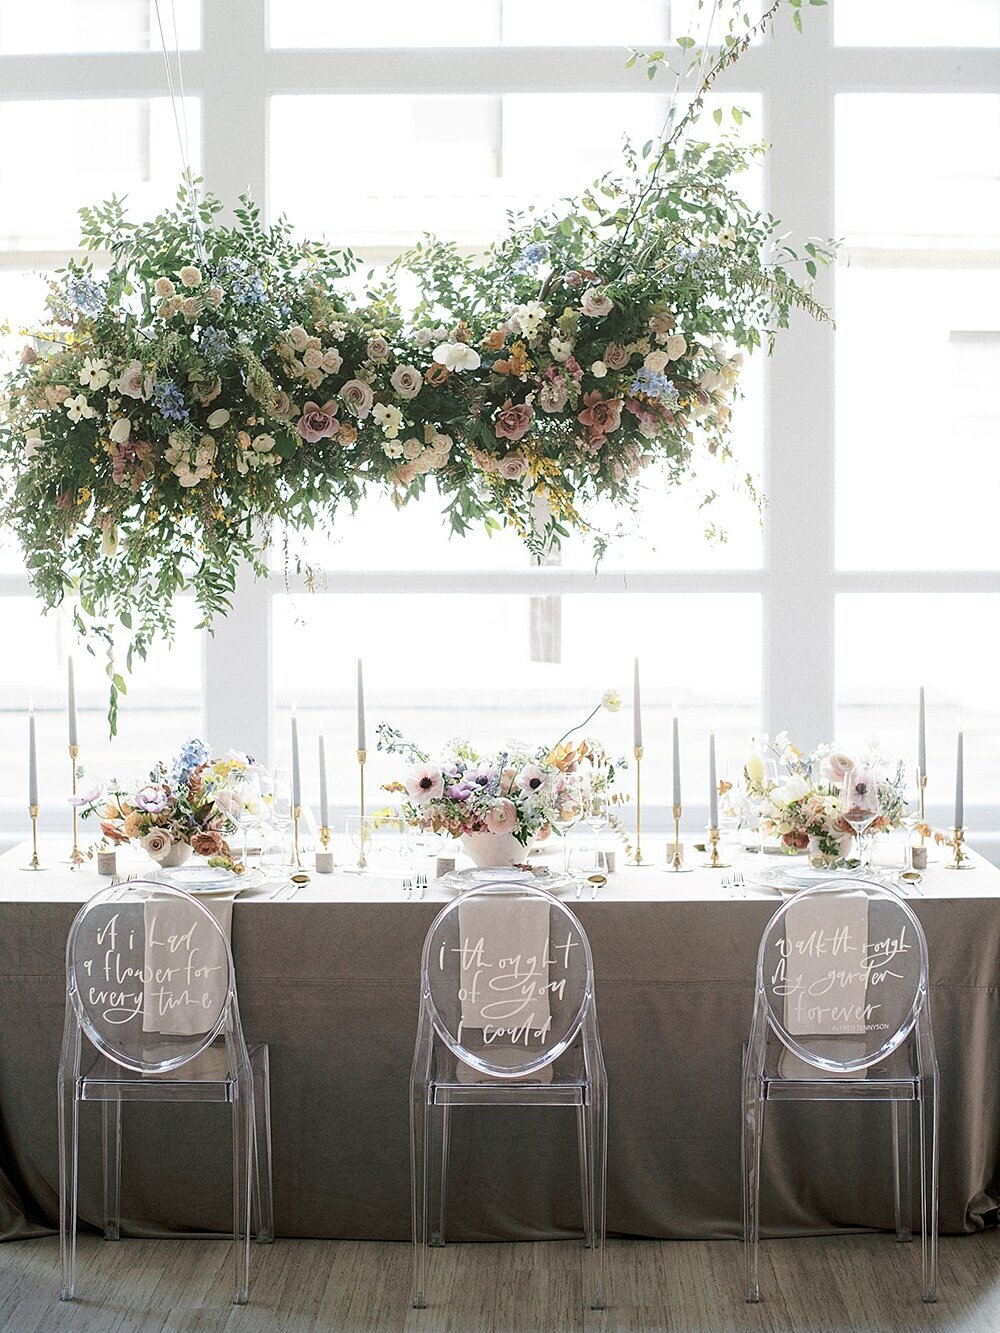 Modern-love-event-leigh-and-mitchell-modern-acrylic-garden-style-hanging-floral-installation-ideas copy